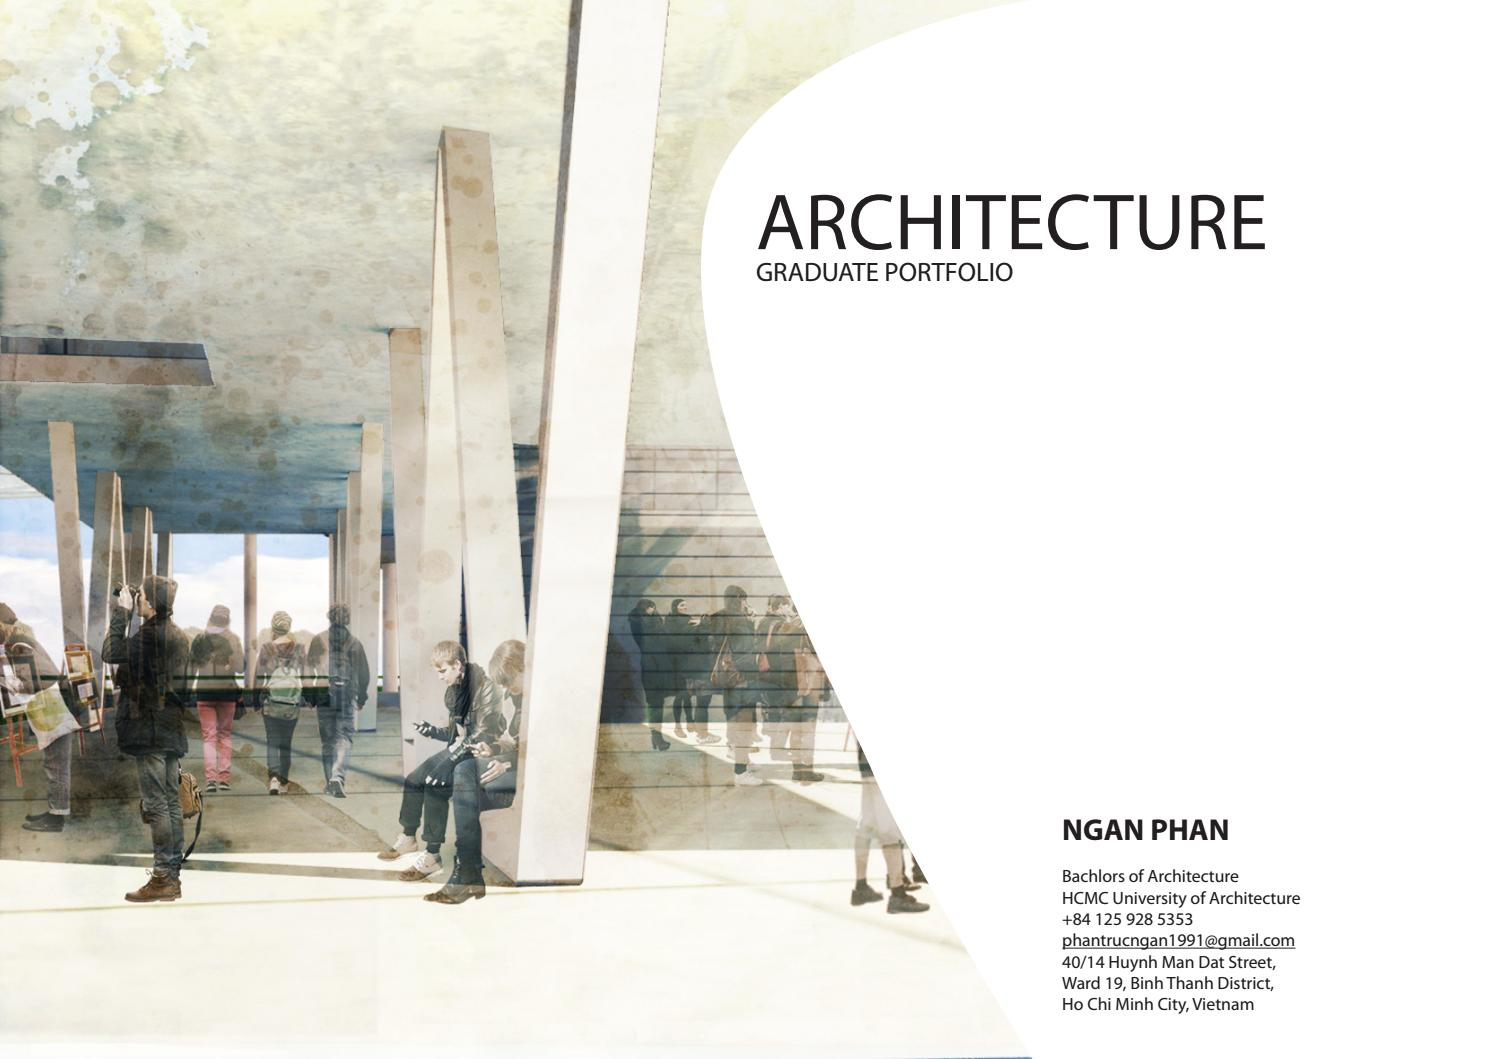 Ngan Phan's Architecture Graduate Portfolio By Phan Ngan. Alarplasty Before And After Photos. Alaska Housing Finance Corporation. Microsoft Stock Purchase Locksmith In Phoenix. Any Solution For Hair Fall E Commerce Social. Hotel Union Square In San Francisco. Assisted Living Roswell Ga Online Pt Programs. Savings Account Review Social Media Campaigns. Local Link Building Service Dose Of Nexium